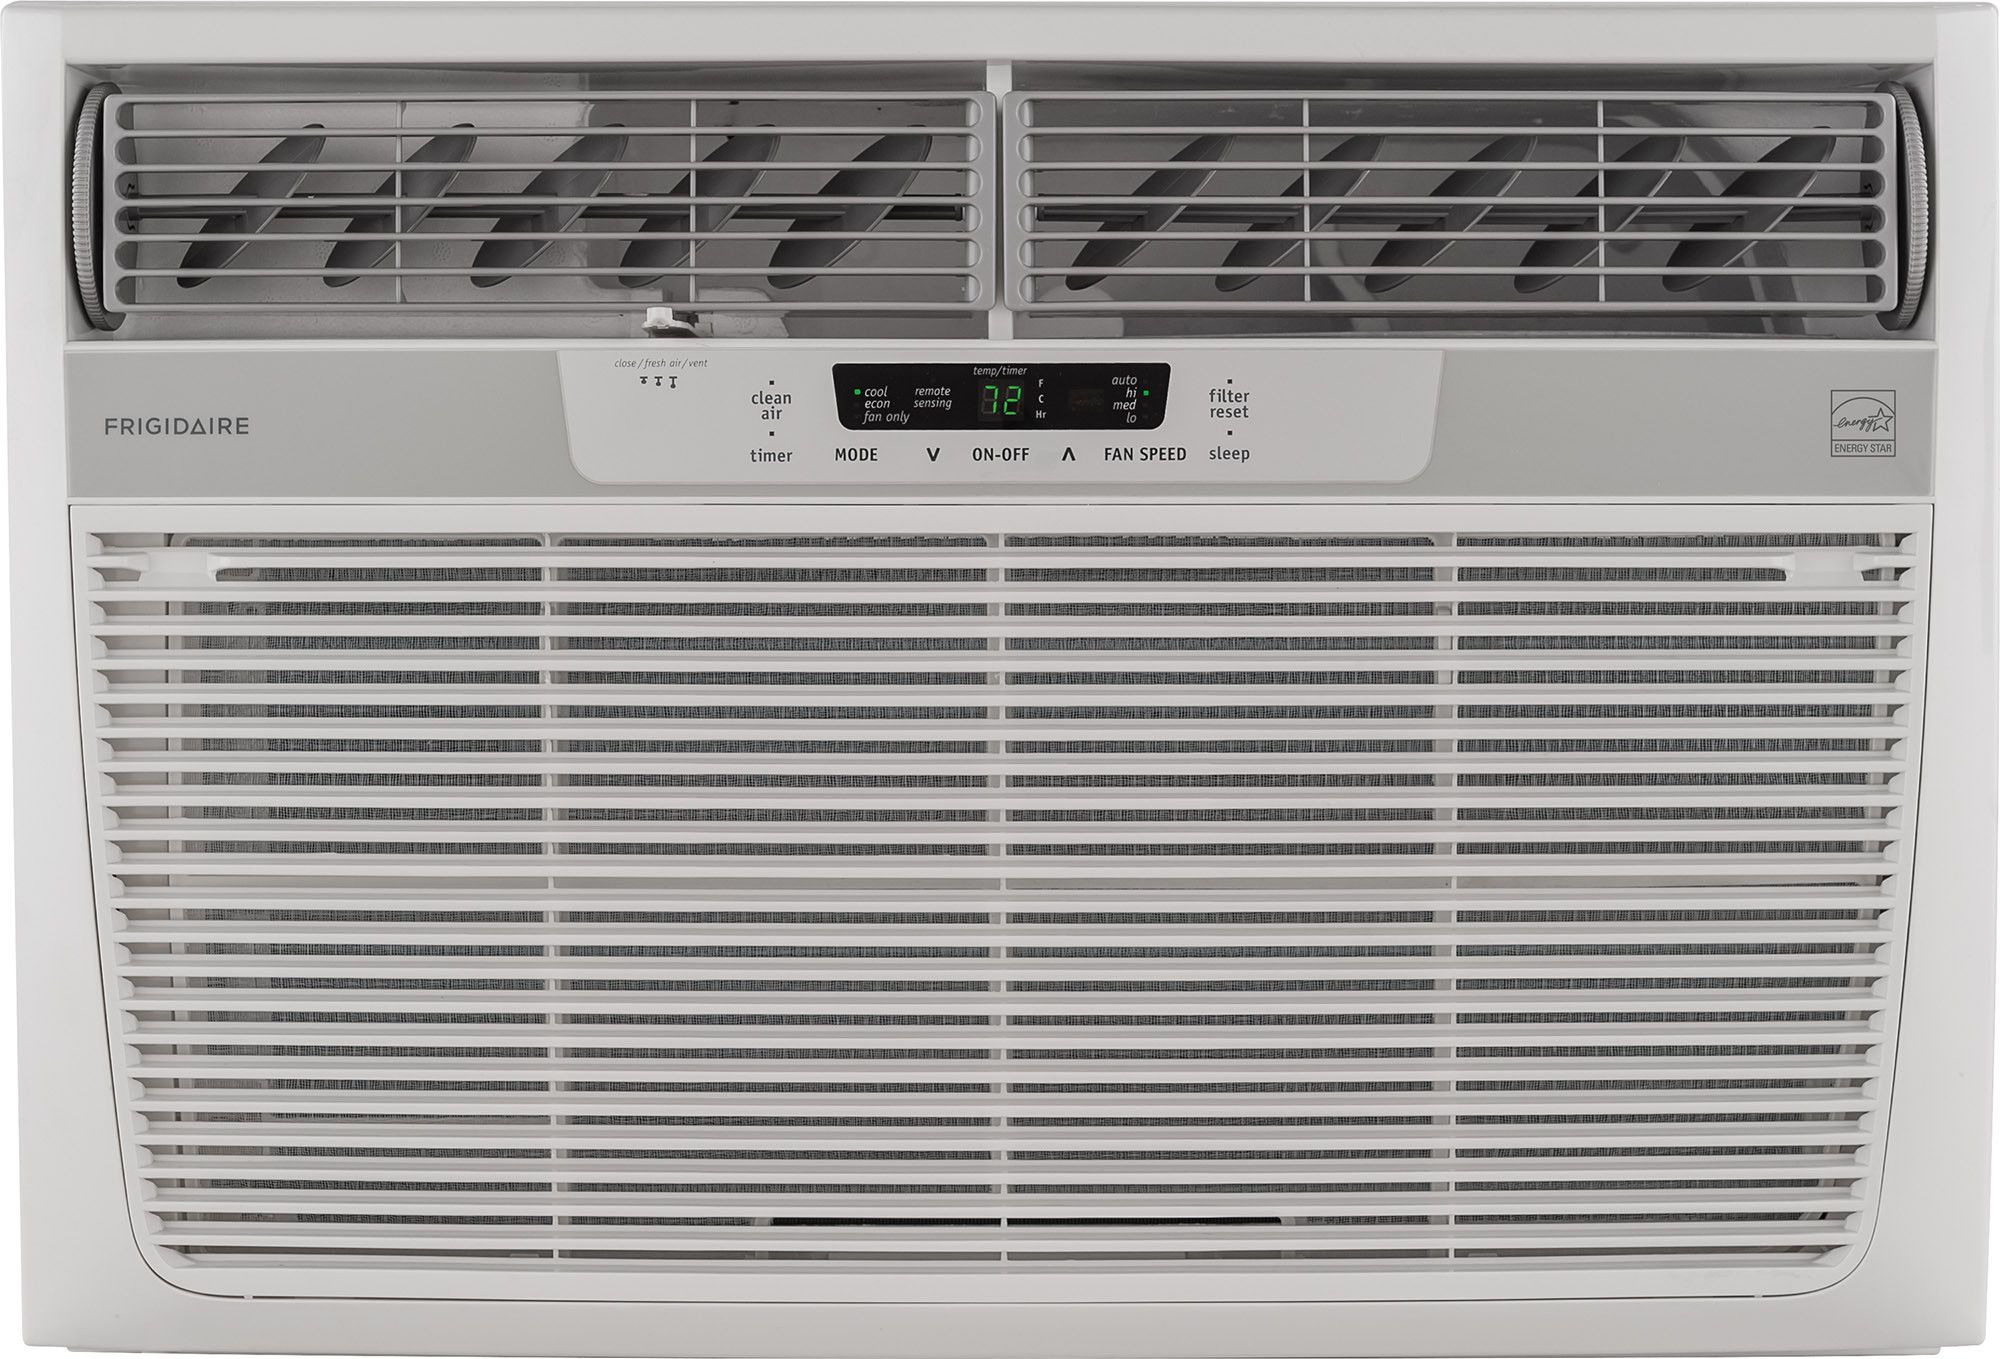 Frigidaire Ffre2233s2 22 000 Btu Energy Star Window Wall Air Conditioner With Digital Controls Remote Control 1 300 Sq Ft Cooling Area Ready Select Control Window Air Conditioner Room Air Conditioner Compact Air Conditioner